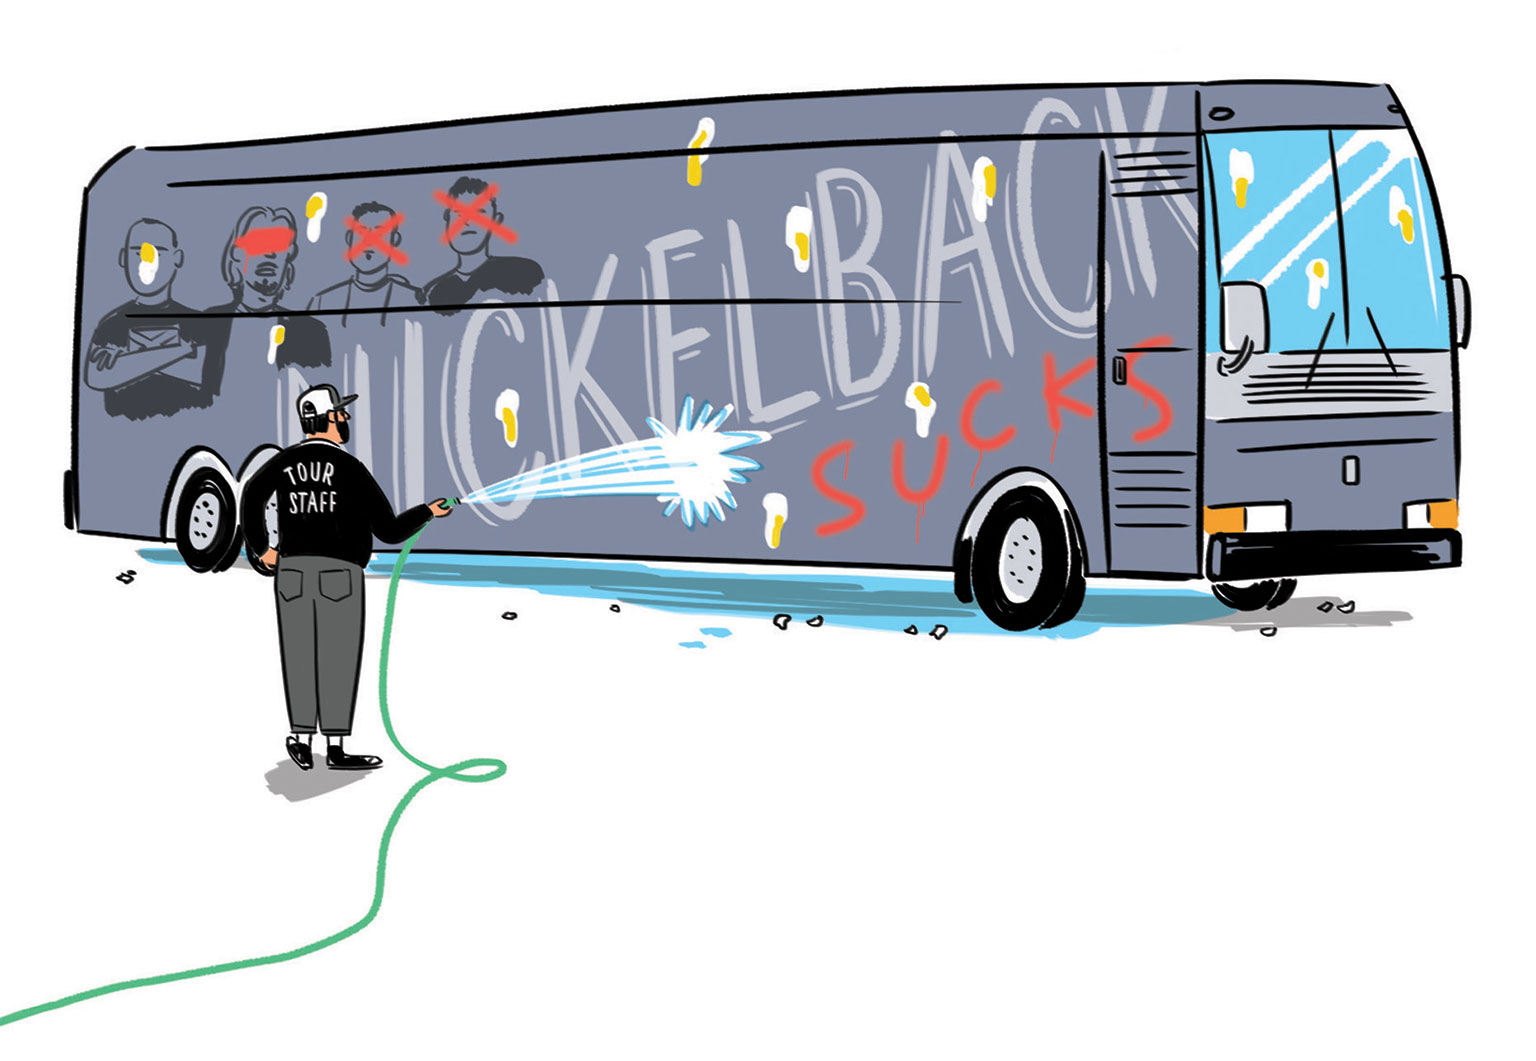 Illustration of Nickelback's tour bus by Kyle Metcalf